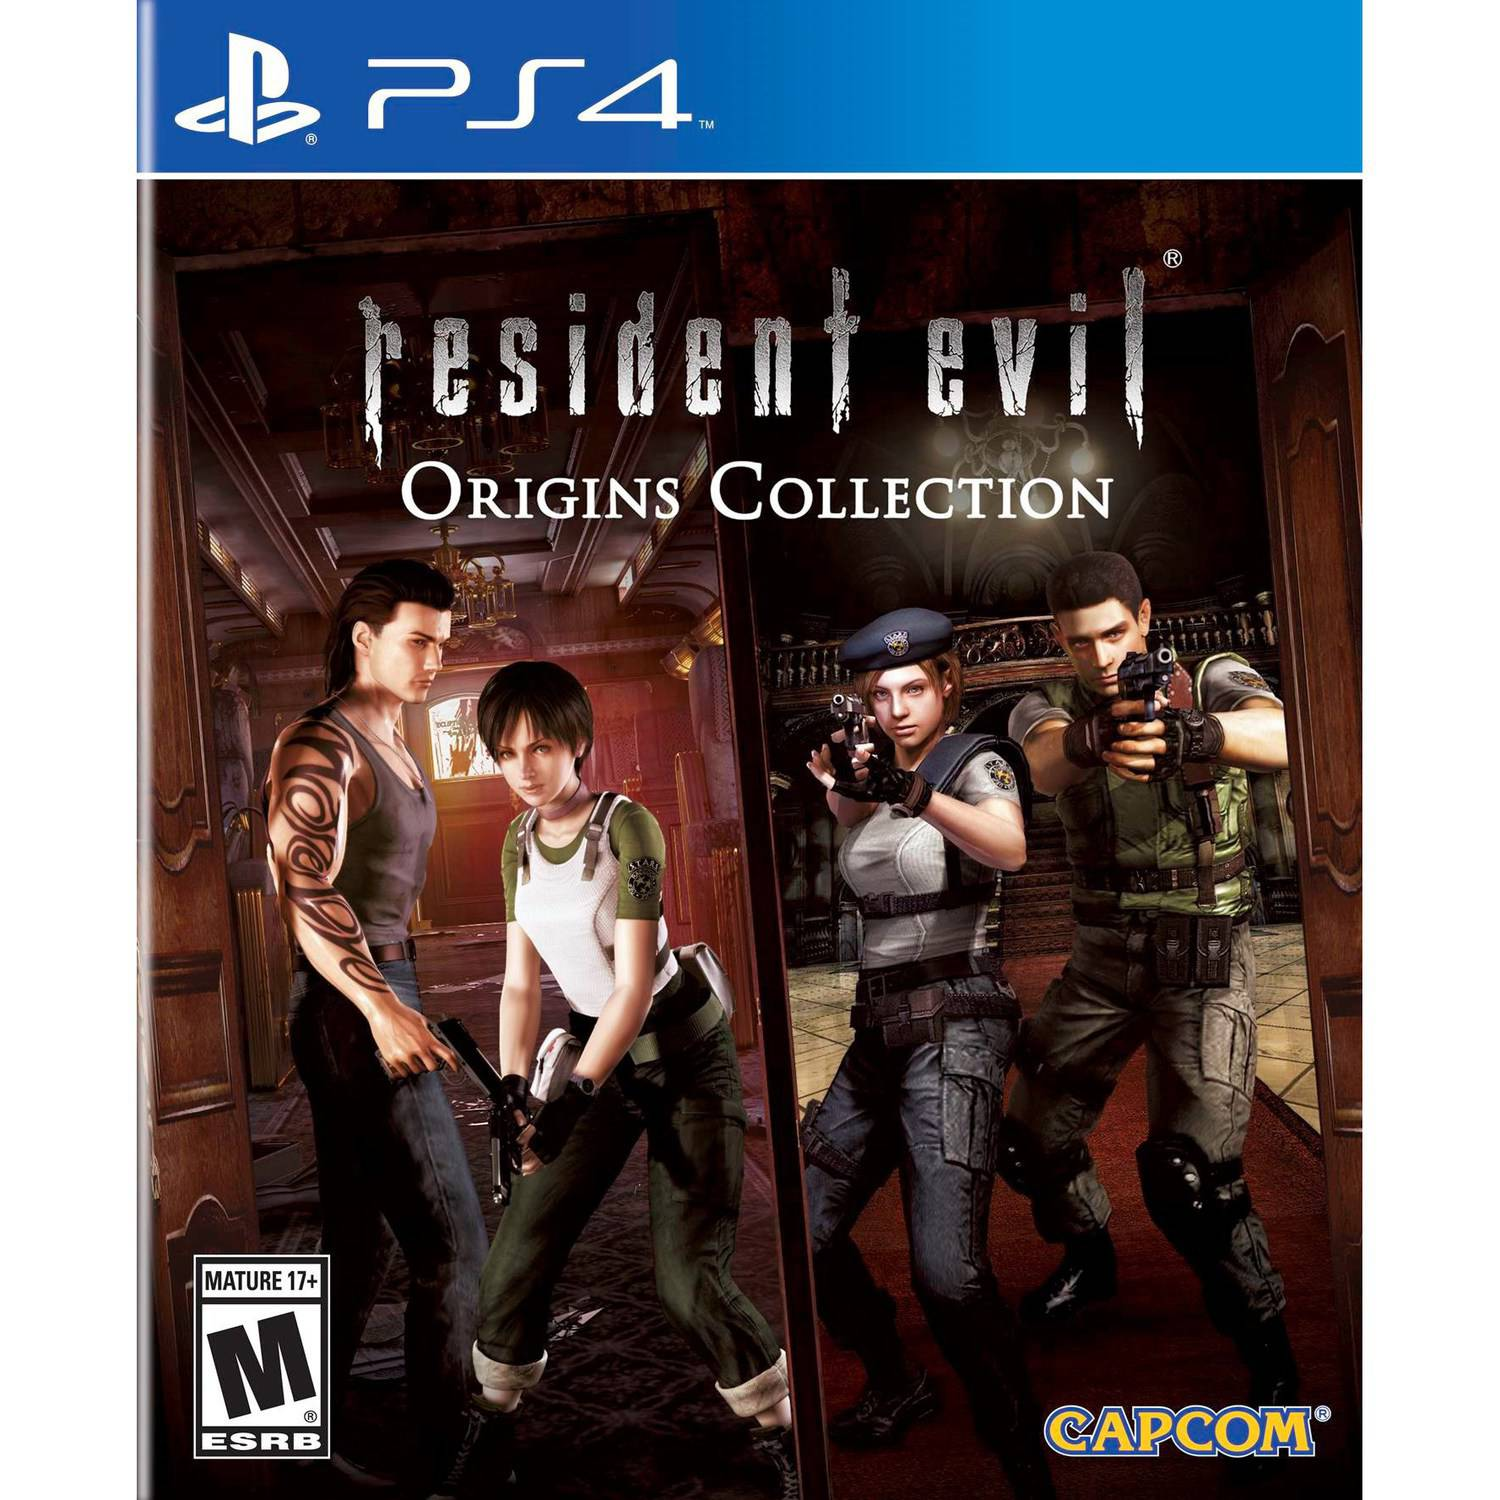 Resident Evil Origins Collection (Playstation 4) by Capcom CO., LTD